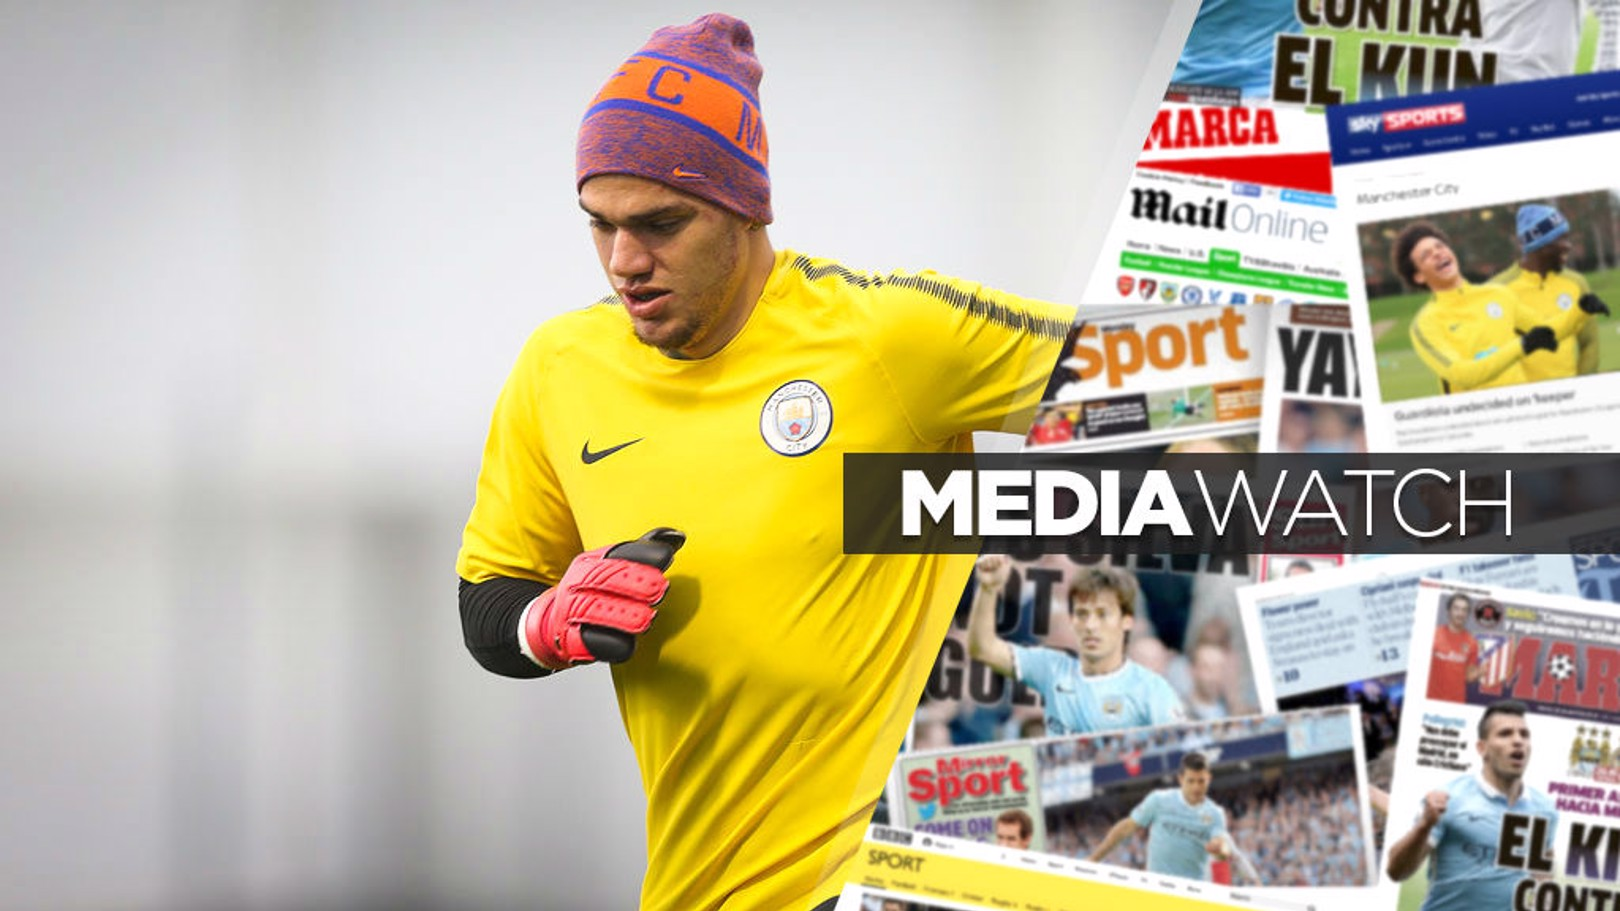 BIG GAME: Ederson is aware of the importance of the Manchester derby.